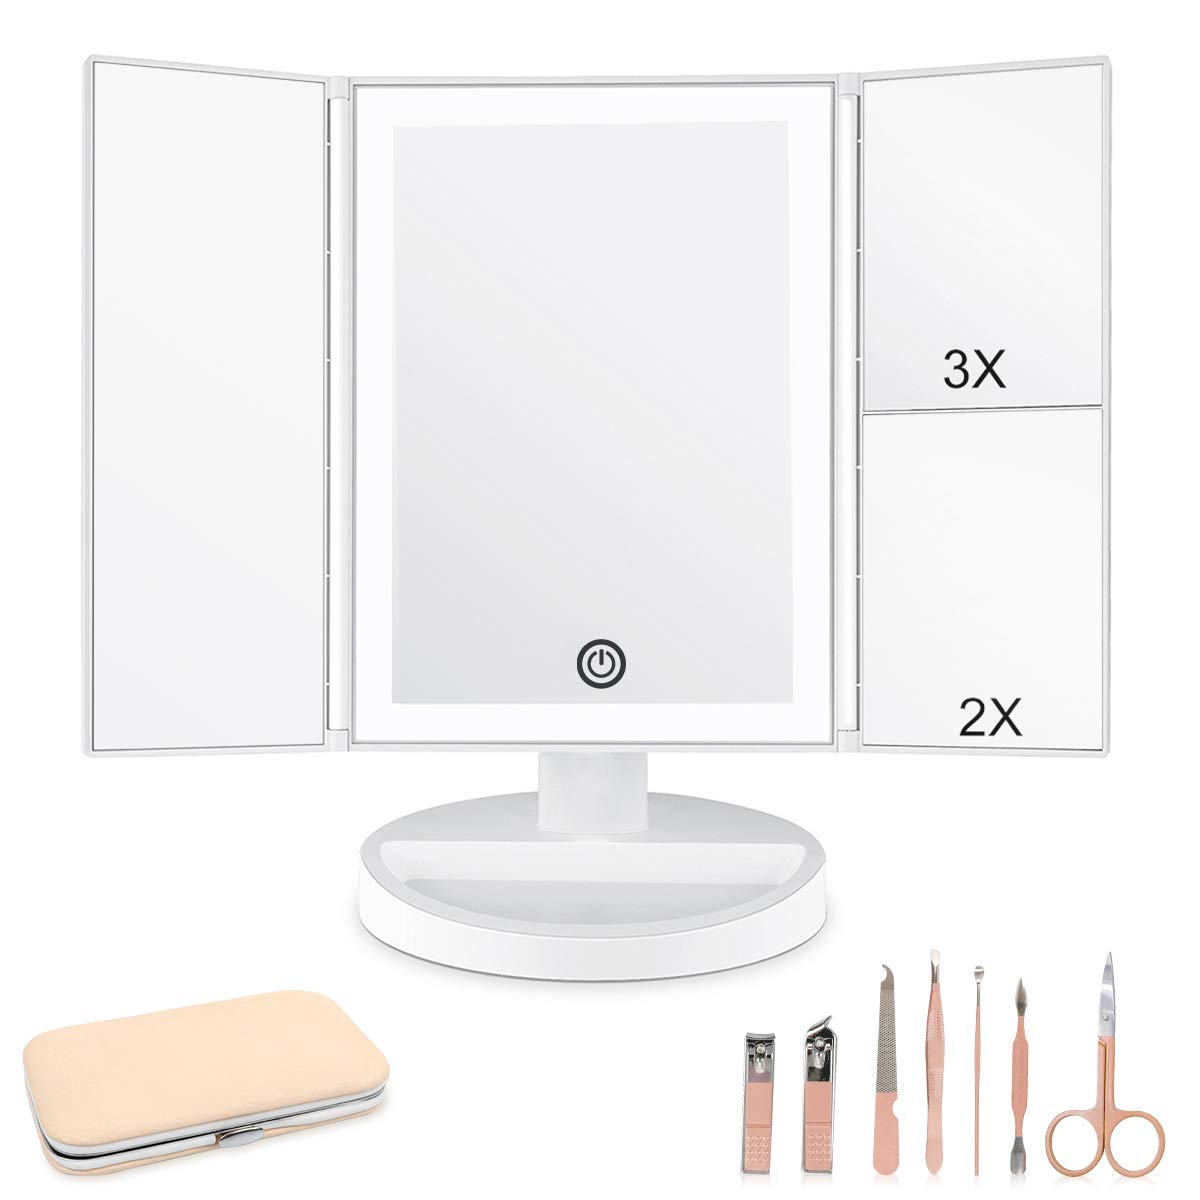 CZW Makeup Vanity Mirror with 3x/2x Magnification, Trifold Mirror with LED Lights, Touch Screen, 180° Adjustable Rotation, Dual Power Supply, White Countertop Cosmetic Mirror with 7Pcs Manicure Set